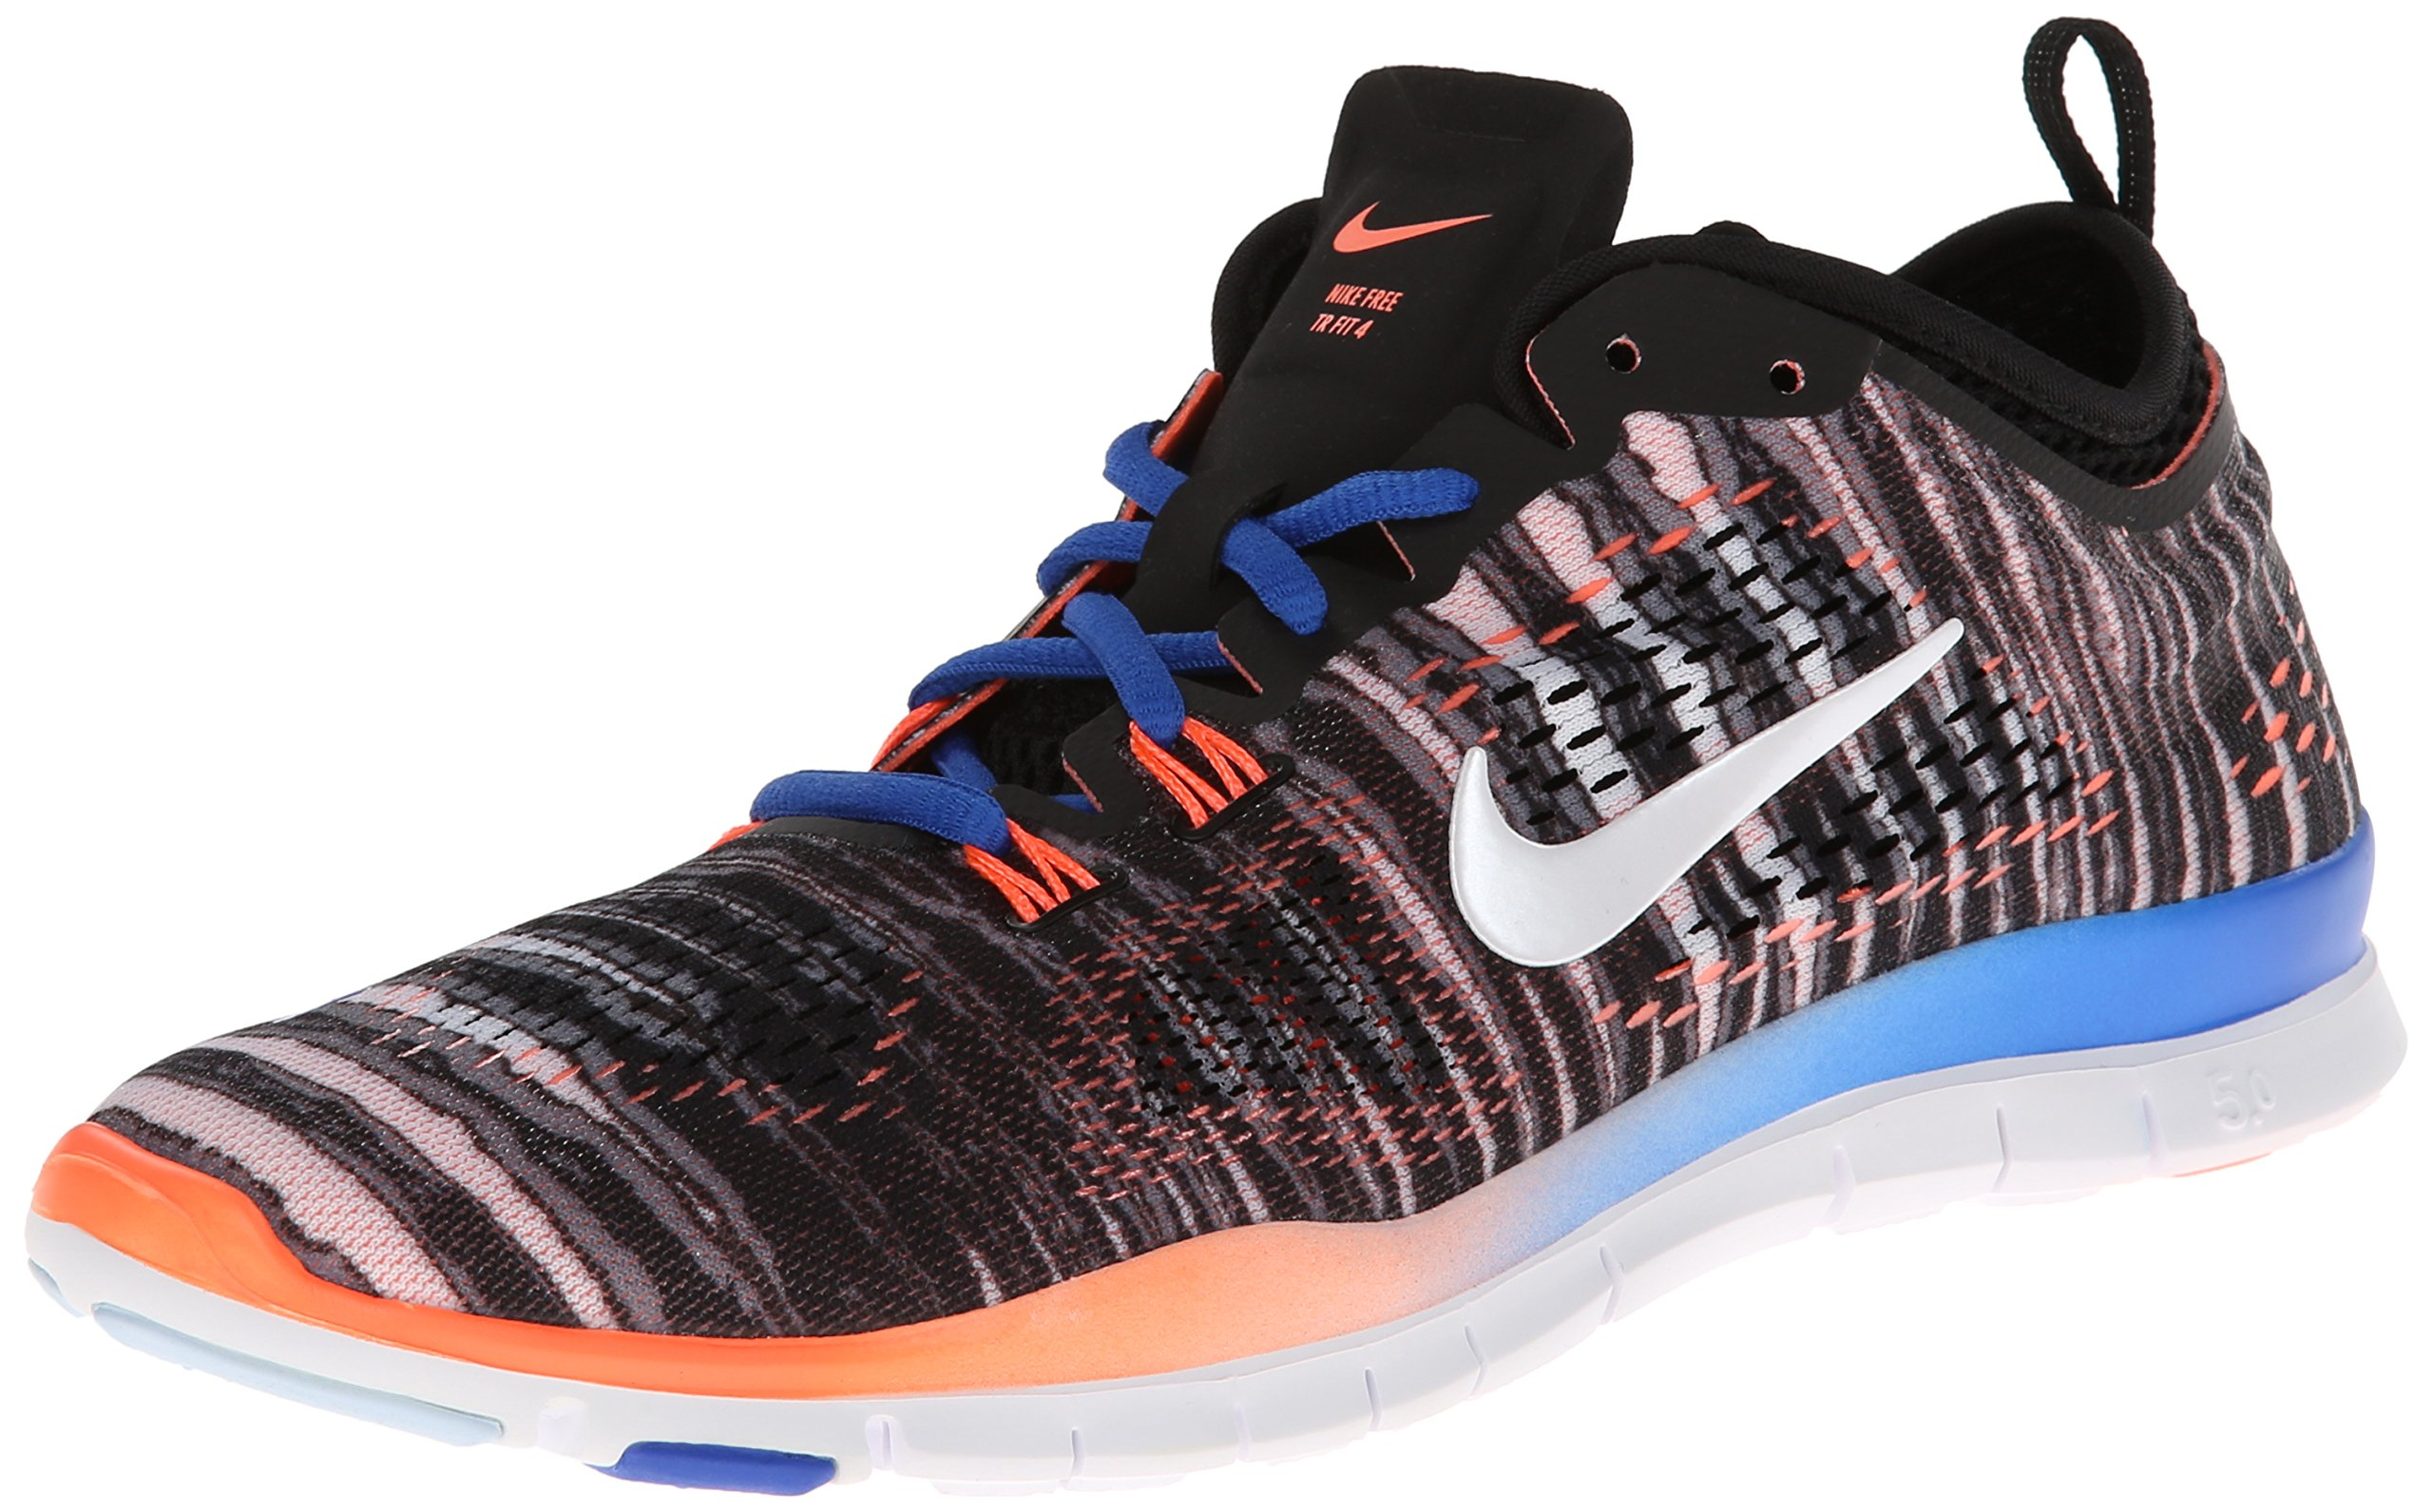 the latest 3b953 611a5 Nike Women's Free 5.0 Tr Fit 4 Print | Shoes Mall Fashion - Online Shoes  store